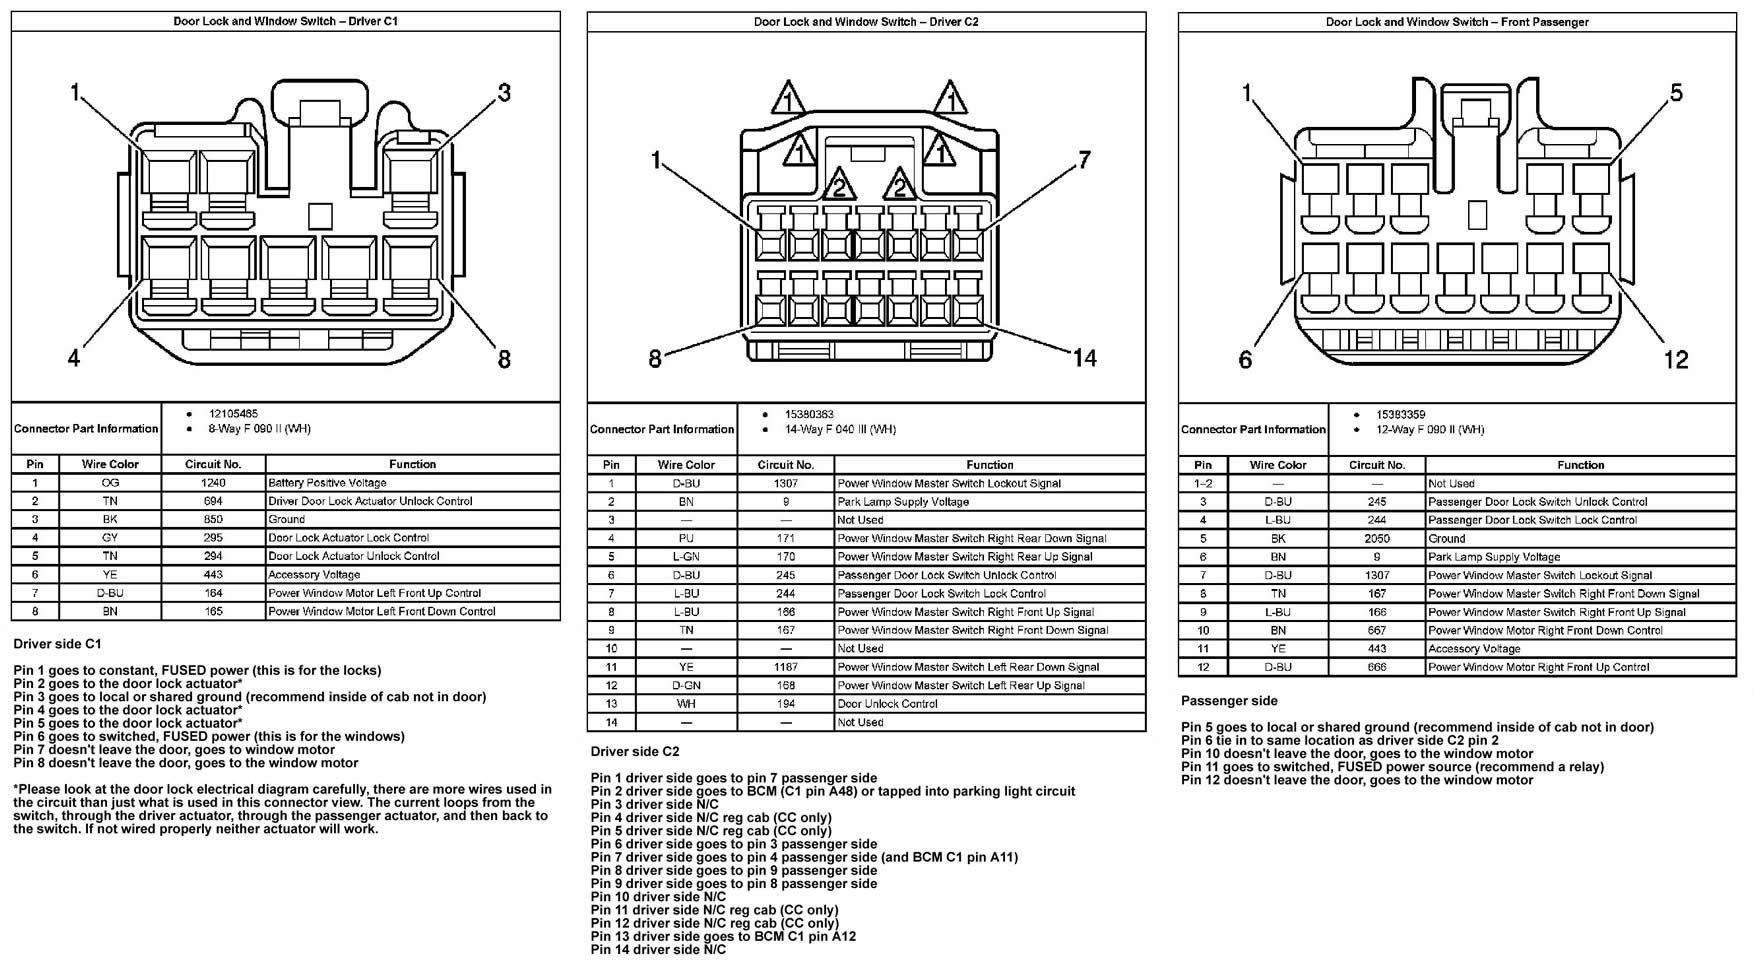 roger vivi ersaks: 2005 Colorado Wiring Diagram on chevy colorado oil pump, gm headlight switch wiring diagram, buick lacrosse wiring diagram, oldsmobile cutlass wiring diagram, chevy colorado coil, buick enclave wiring diagram, chevy colorado speedometer, ford thunderbird wiring diagram, 04 colorado wiring diagram, dodge magnum wiring diagram, turn signal wiring diagram, volkswagen golf wiring diagram, 2007 colorado wiring diagram, 2004 colorado wiring diagram, nissan titan wiring diagram, dodge challenger wiring diagram, cadillac srx wiring diagram, gmc jimmy wiring diagram, buick rainier wiring diagram, mercury milan wiring diagram,